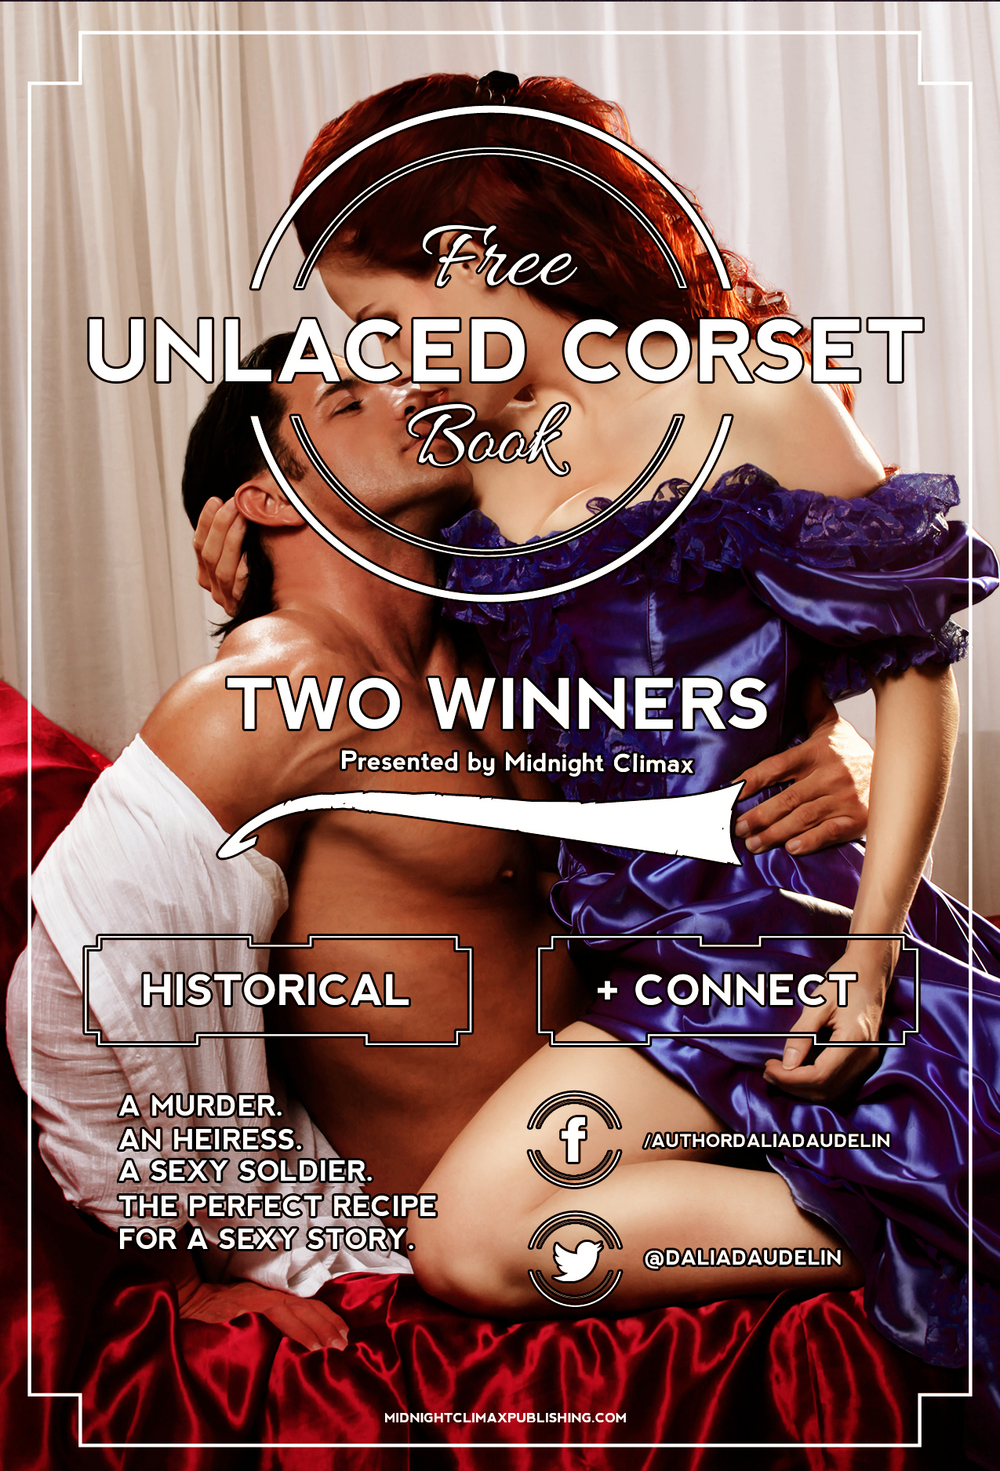 Win a free copy of our newest historical romance, Unlaced Corset!